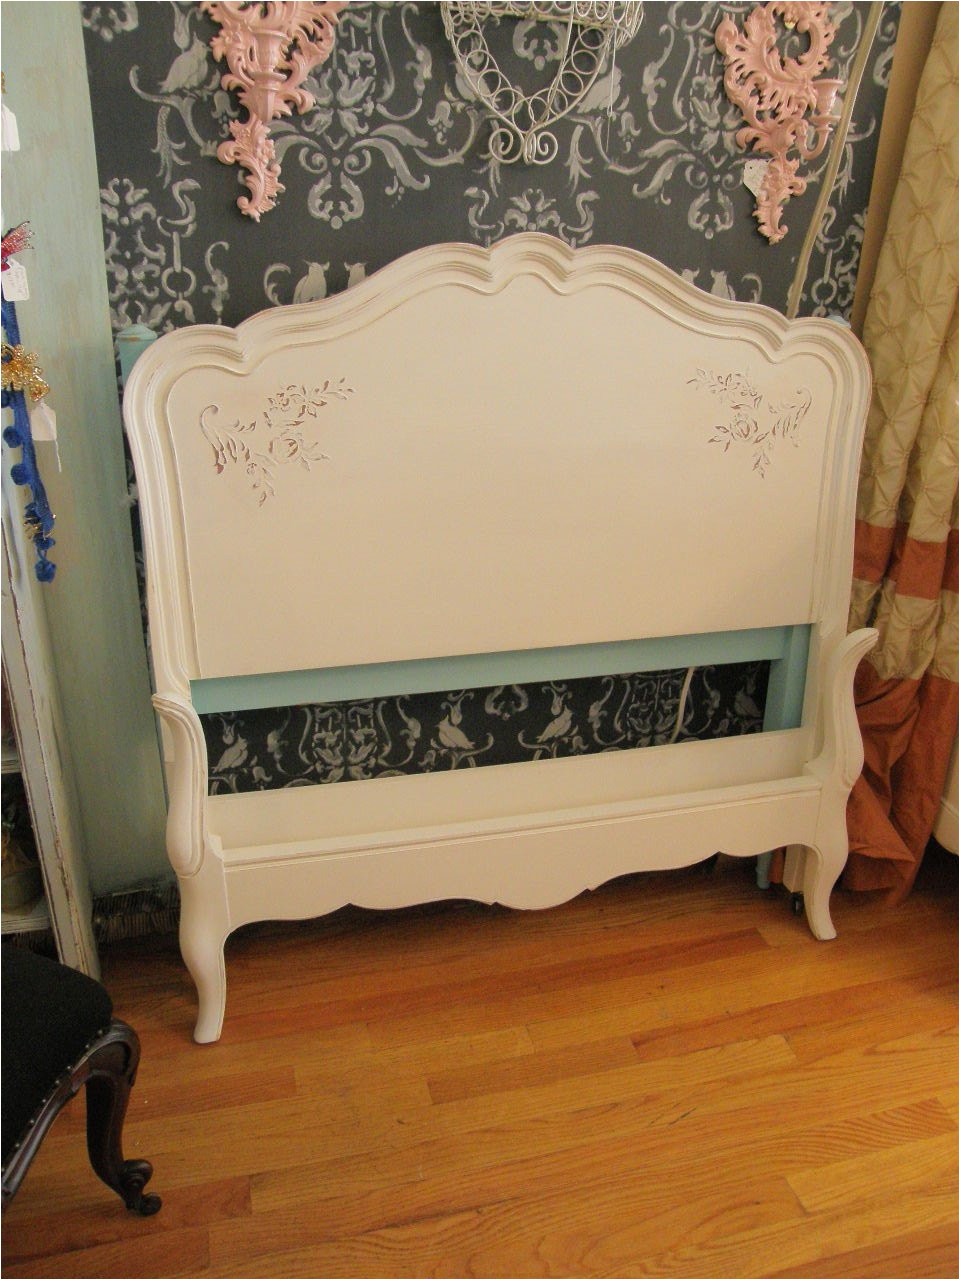 photos of vintage twin bed frame